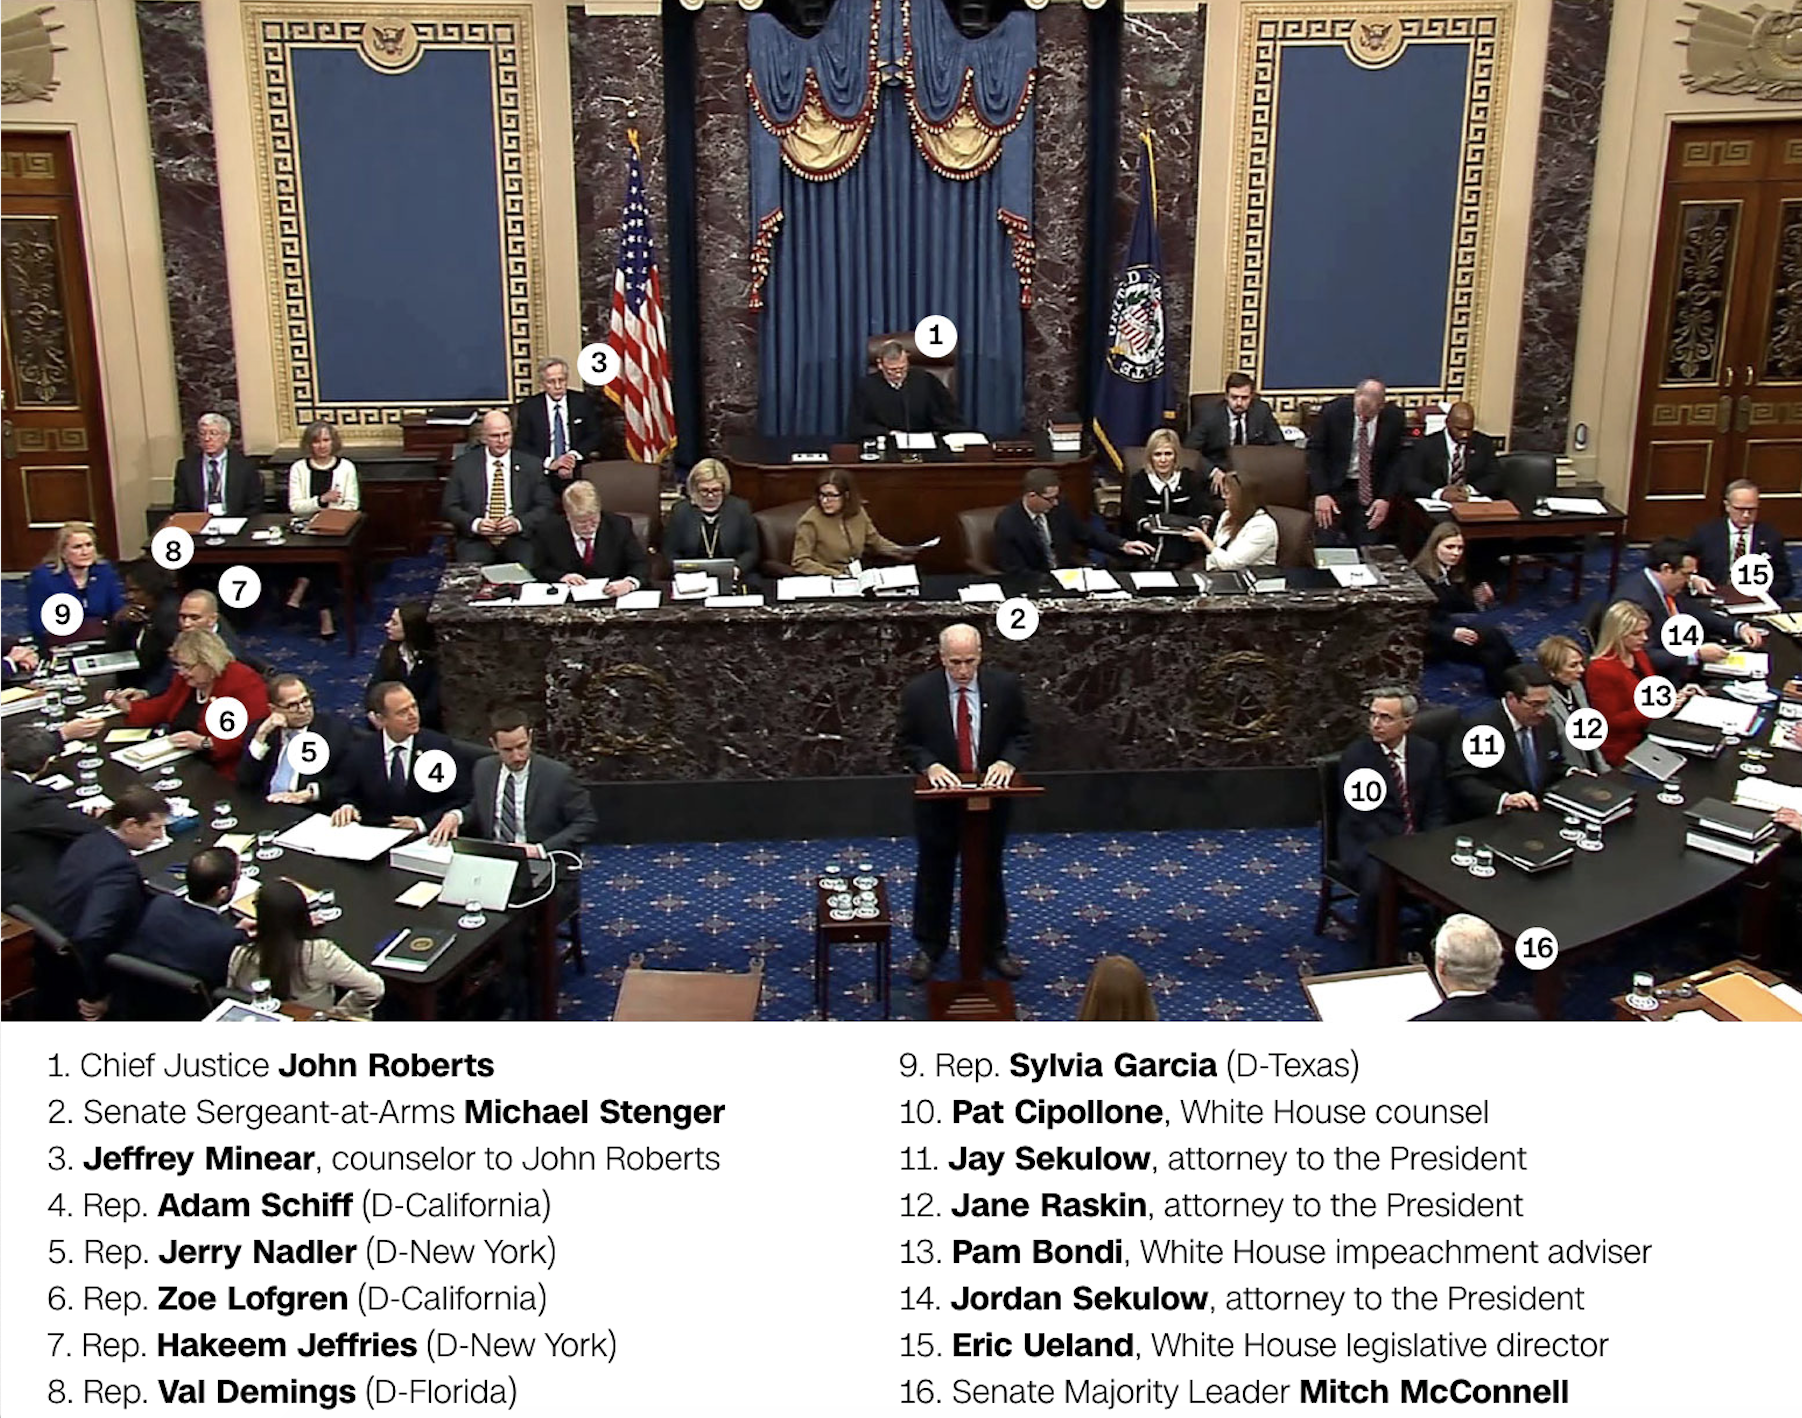 Who's who on the Senate floor today